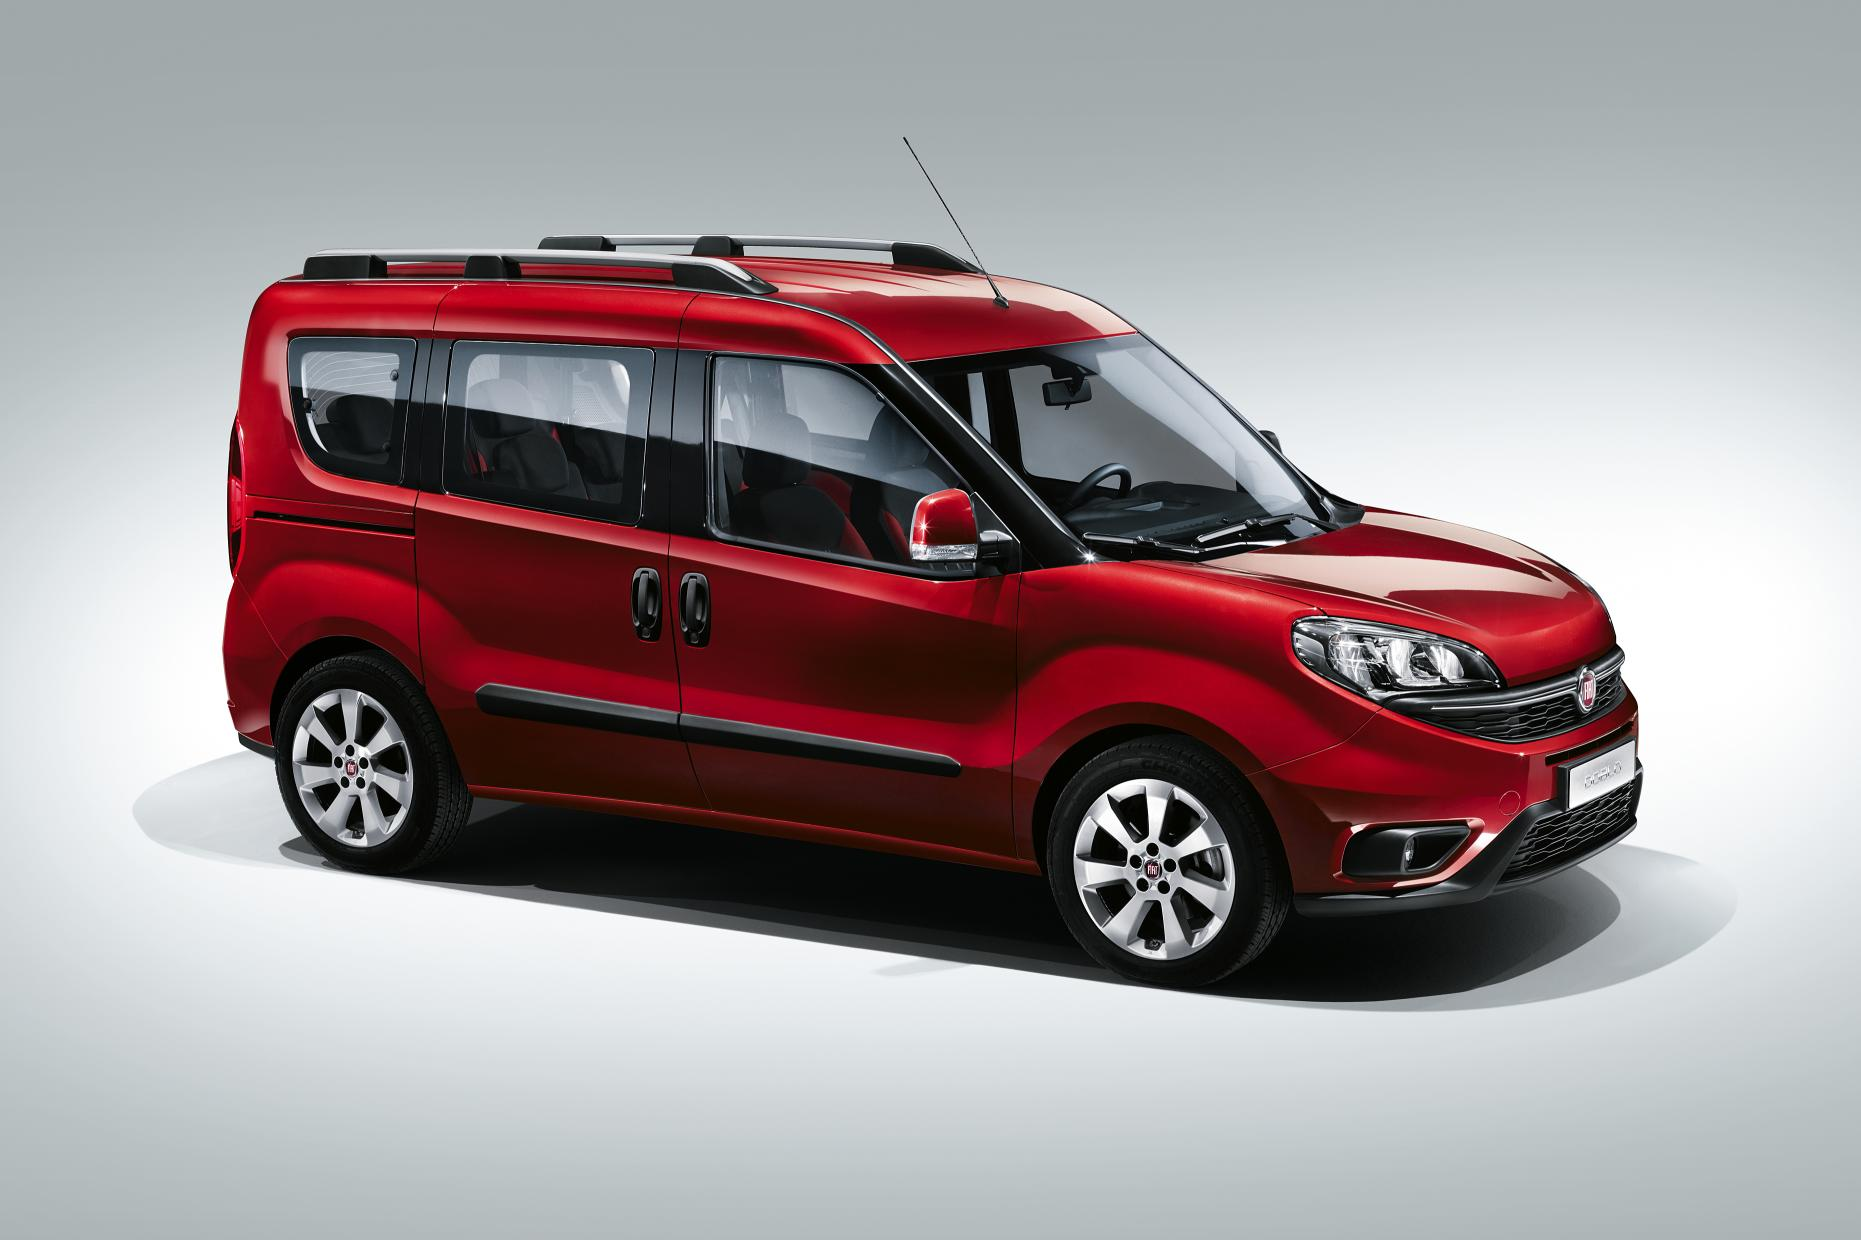 2015 fiat doblo pricing starts at 13 480 autoevolution. Black Bedroom Furniture Sets. Home Design Ideas